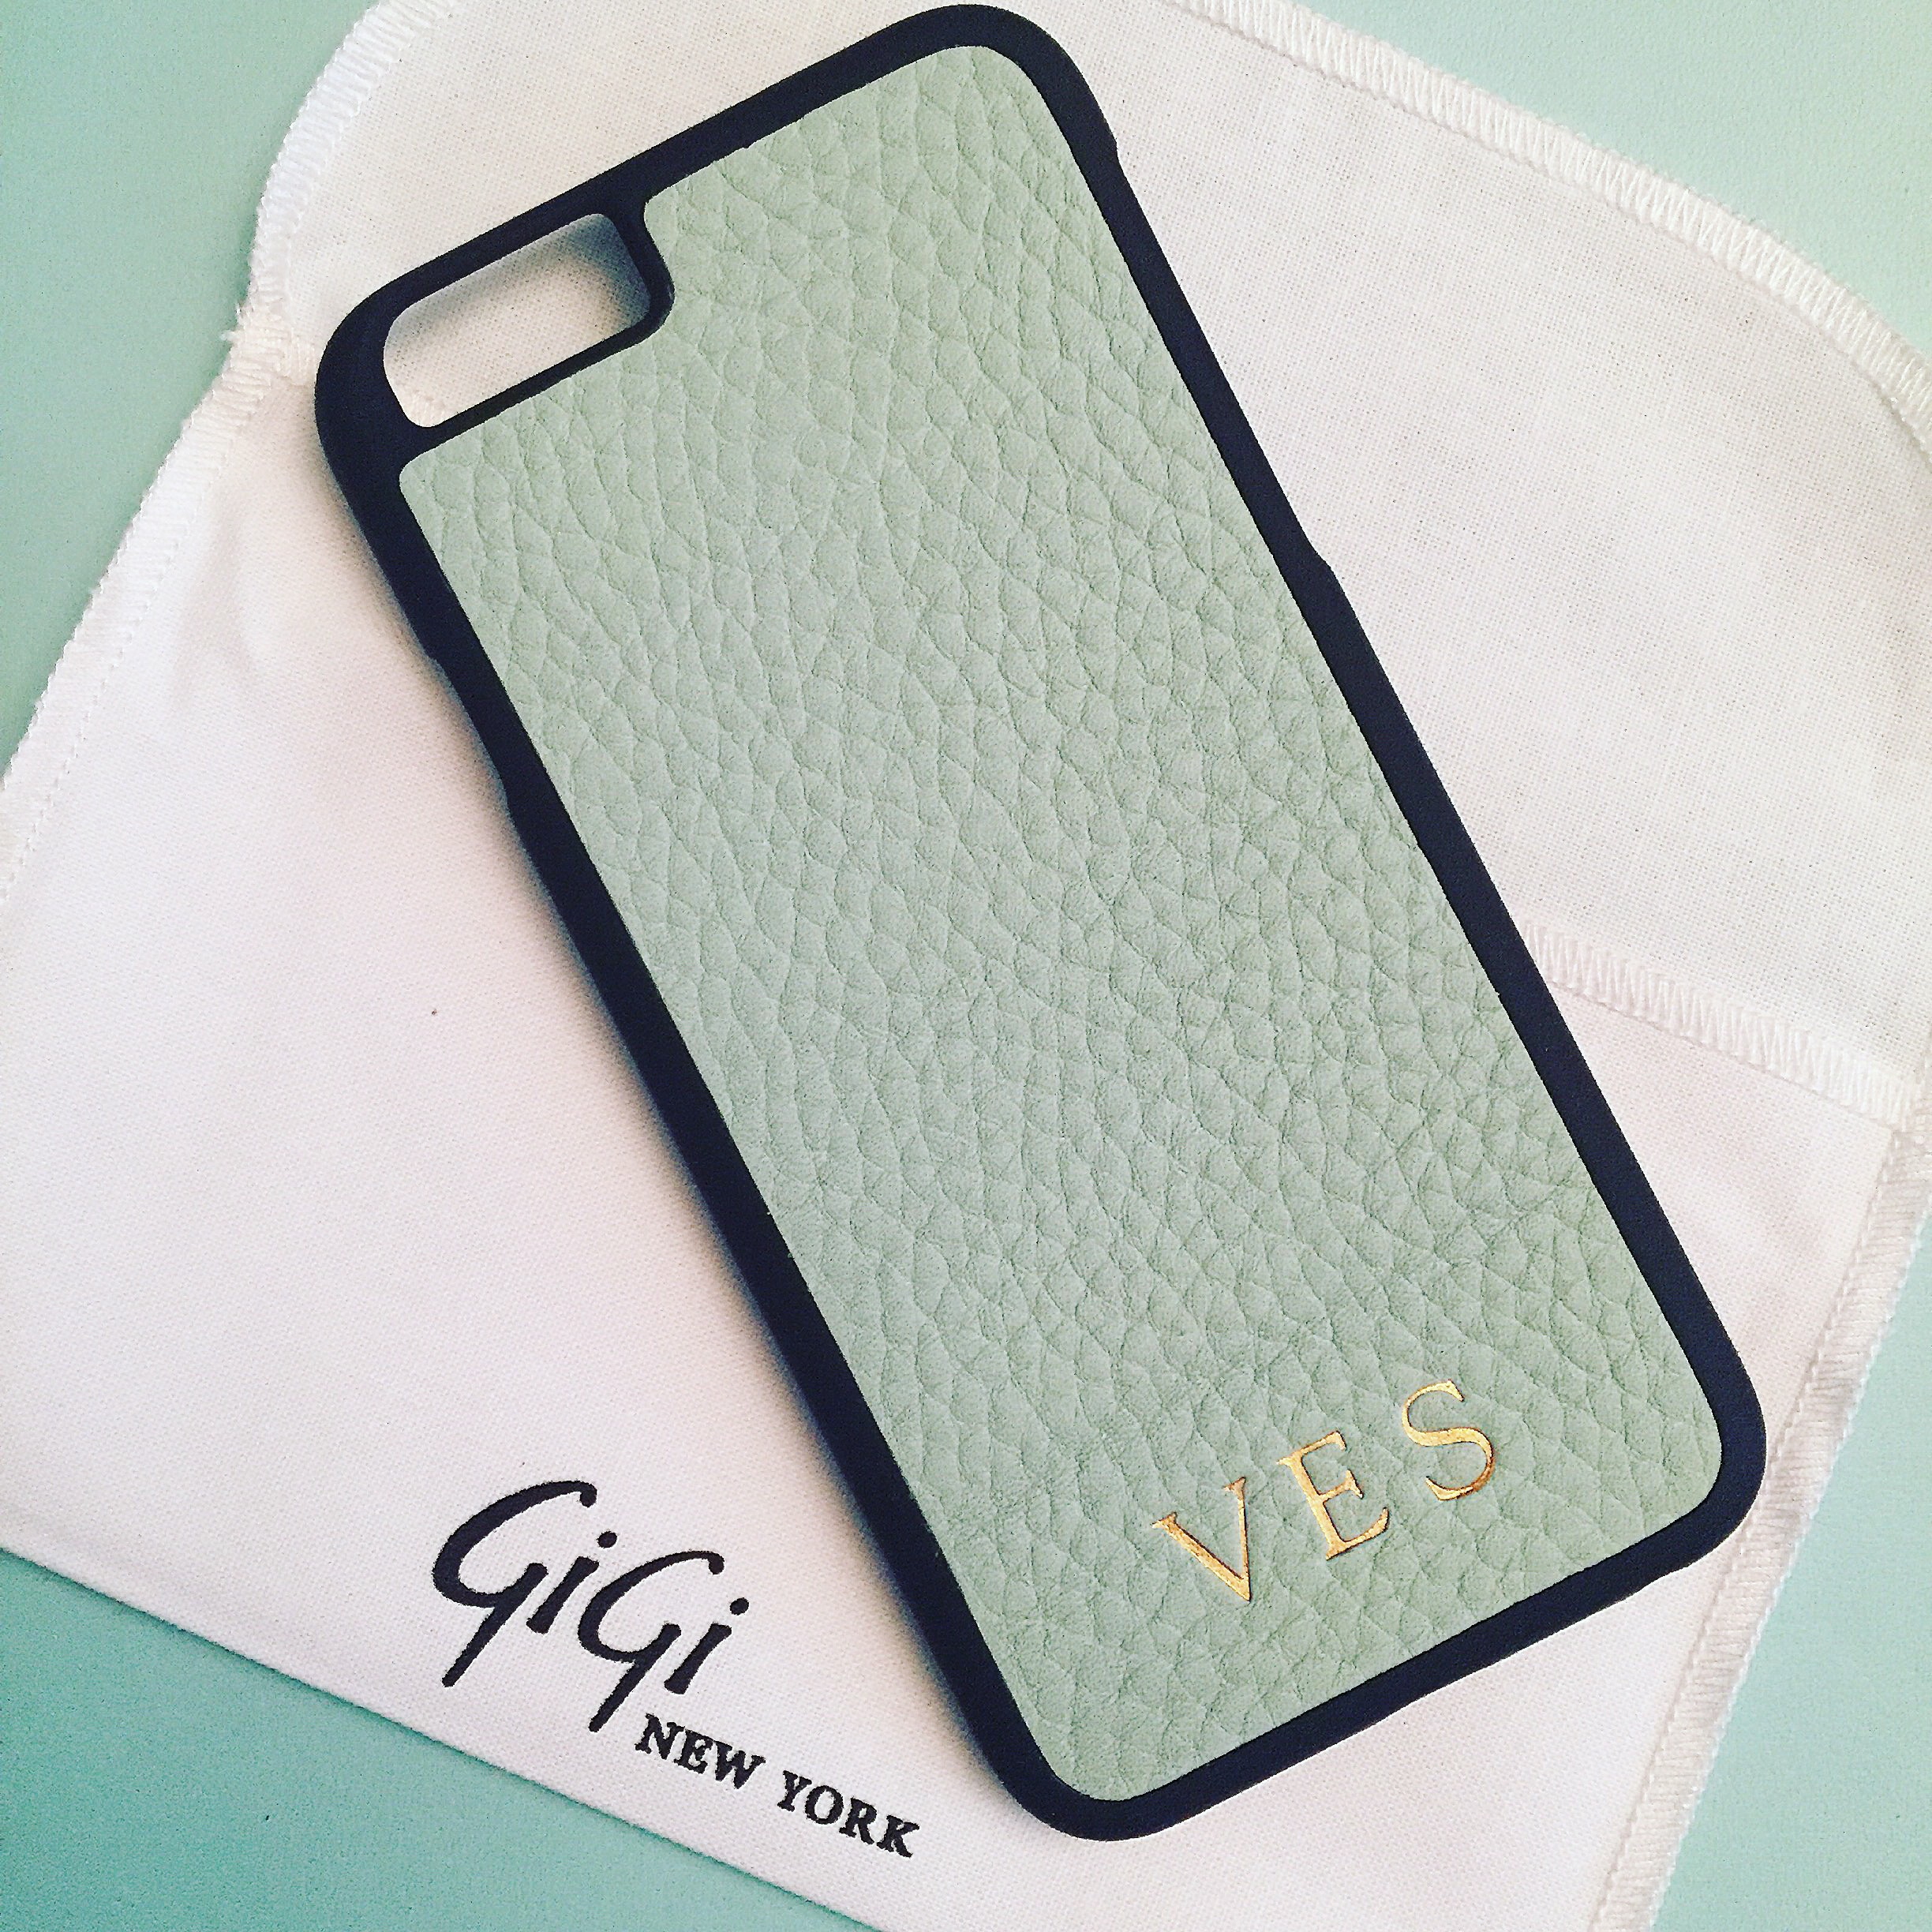 GiGi New York iPhone Case